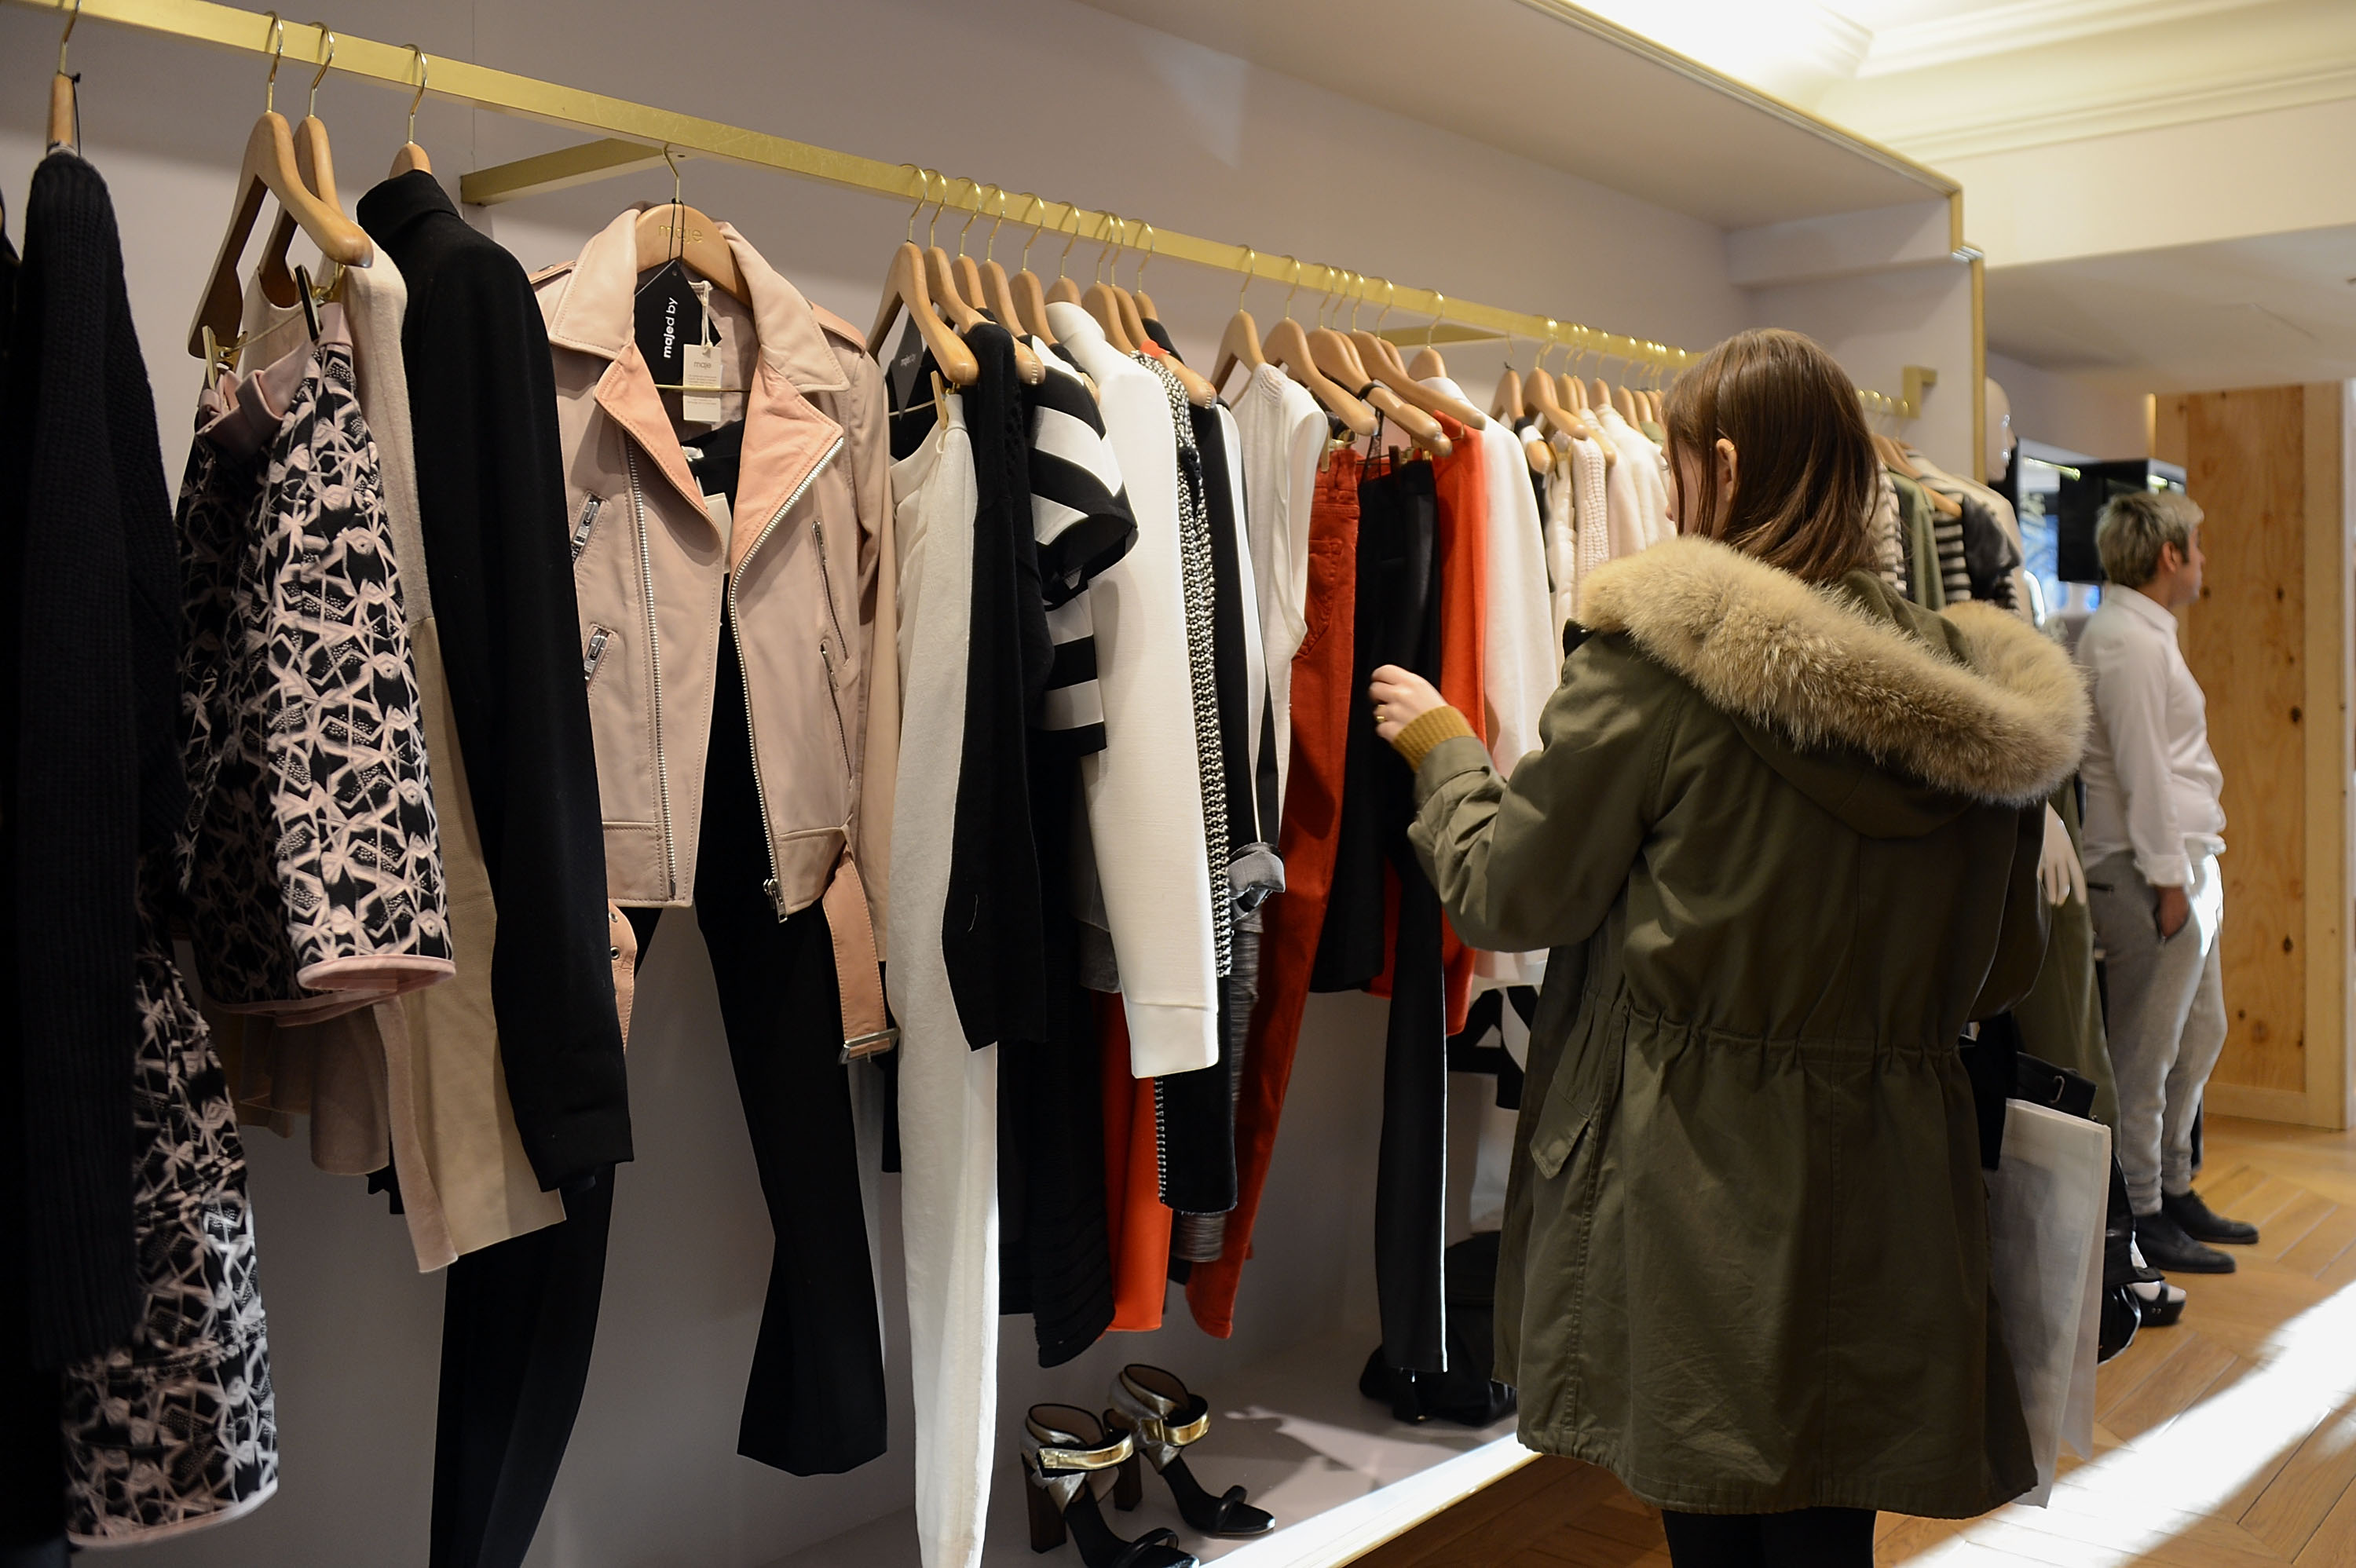 e70c8f79deda Why Do Women Like To Shop More Than Men? Stereotype or Not, Researchers  Have Their Theories